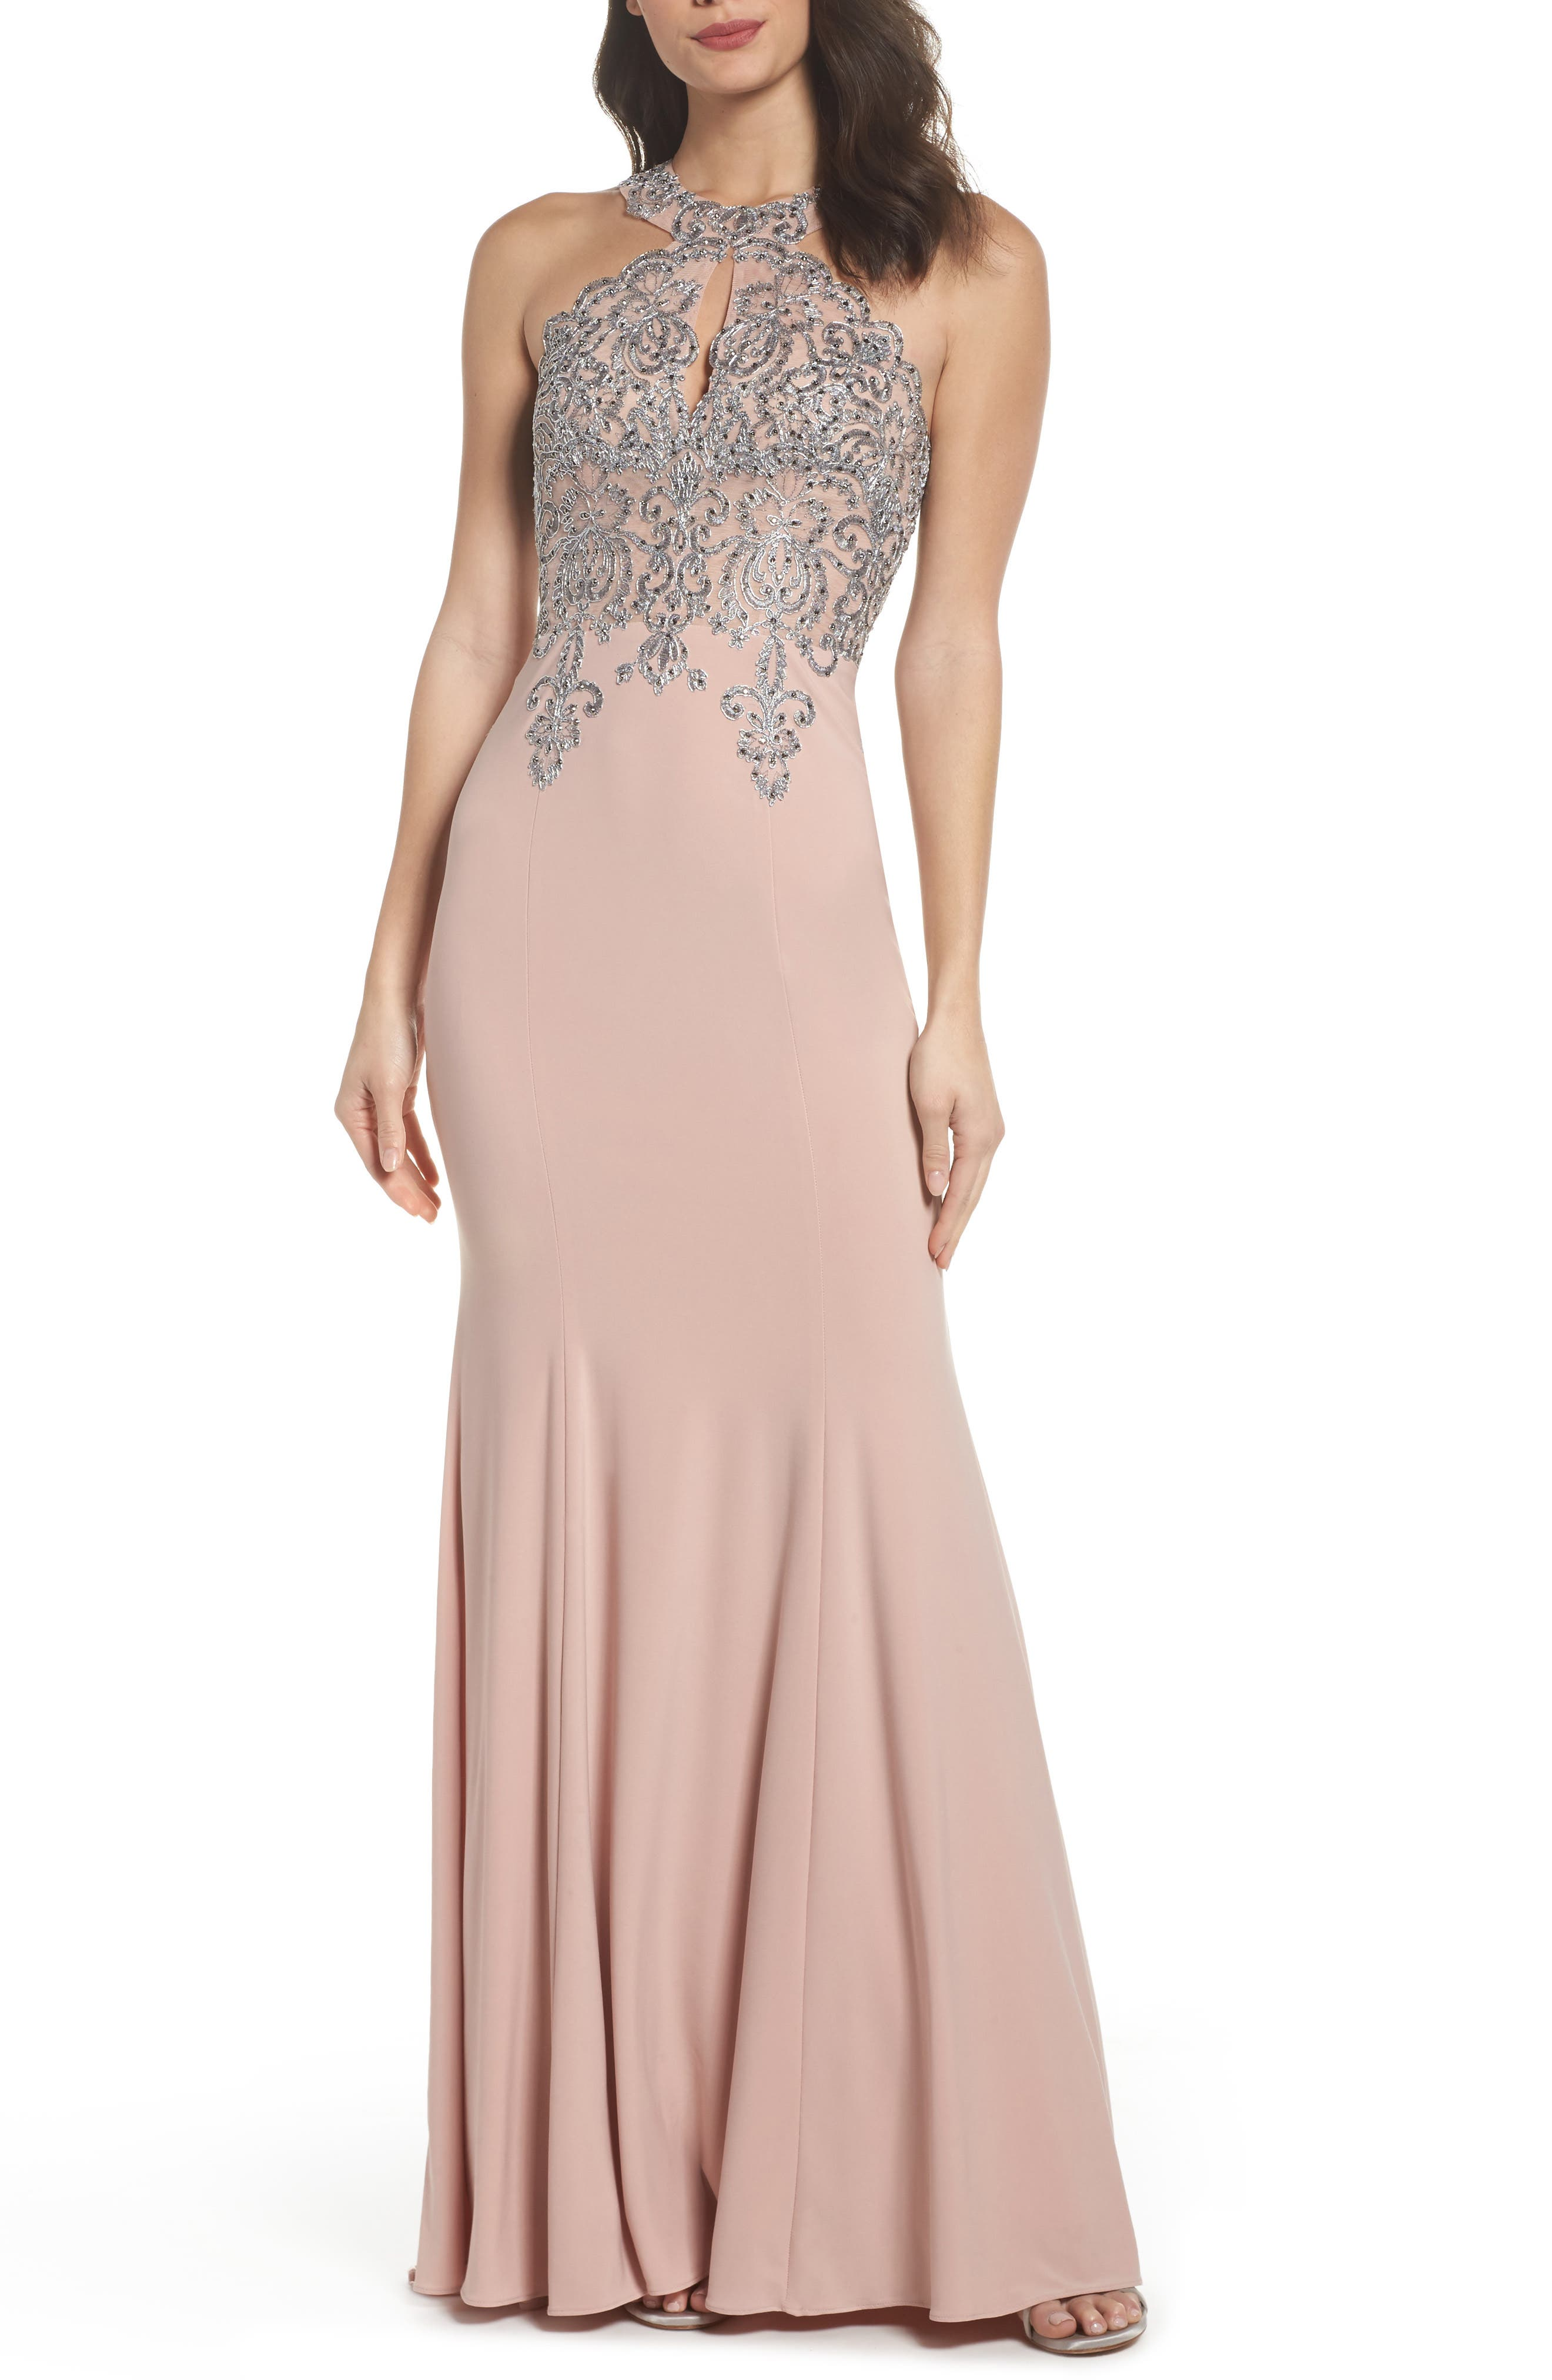 Embellished Embroidered Gown,                             Main thumbnail 1, color,                             Blush/ Gunmetal